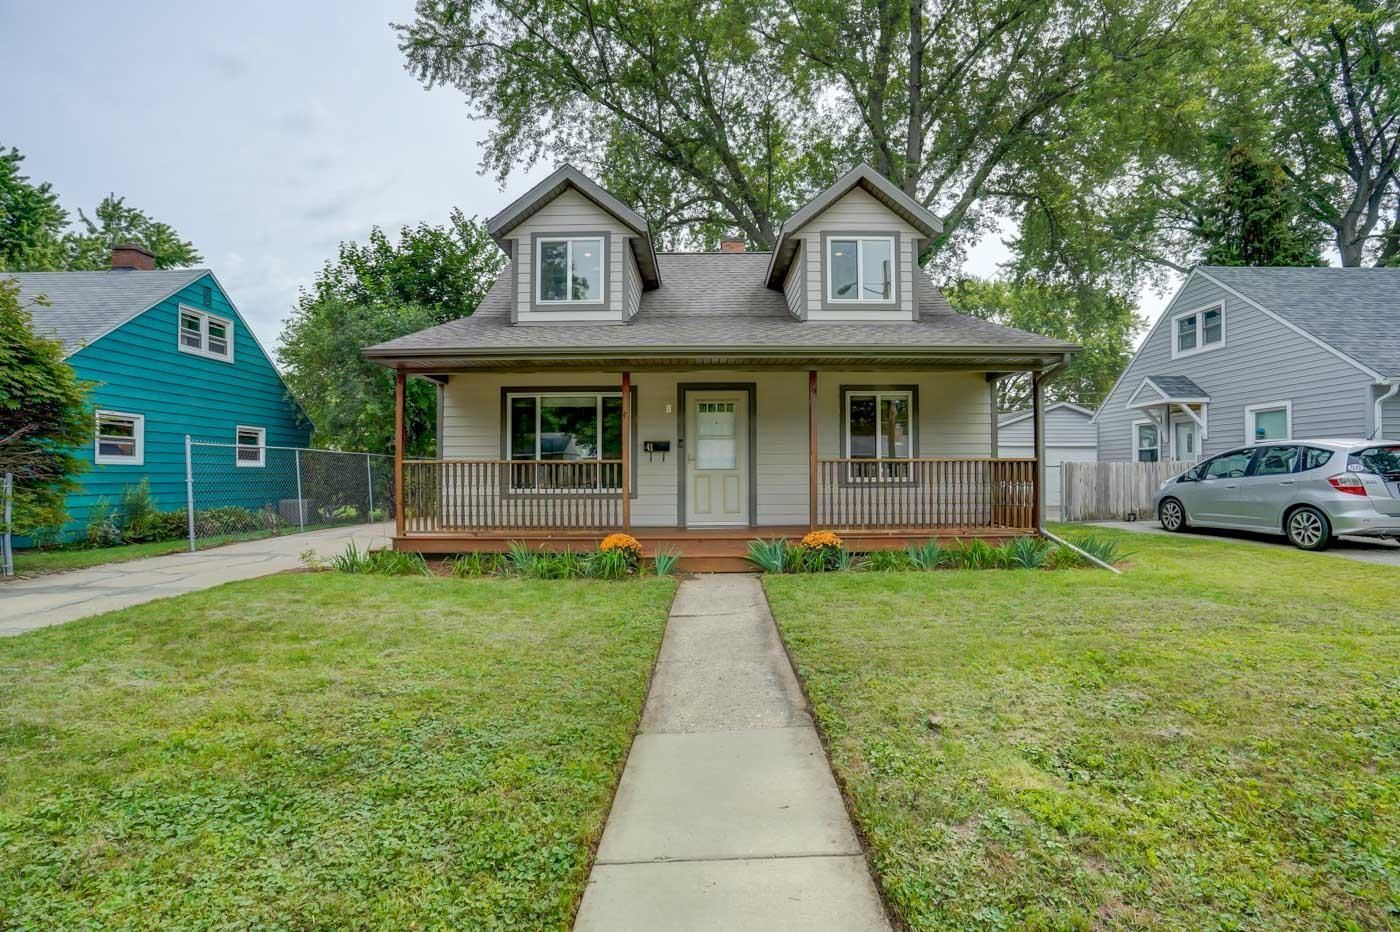 Photo for 41 Walter St, Madison, WI 53714-2315 (MLS # 1918807)